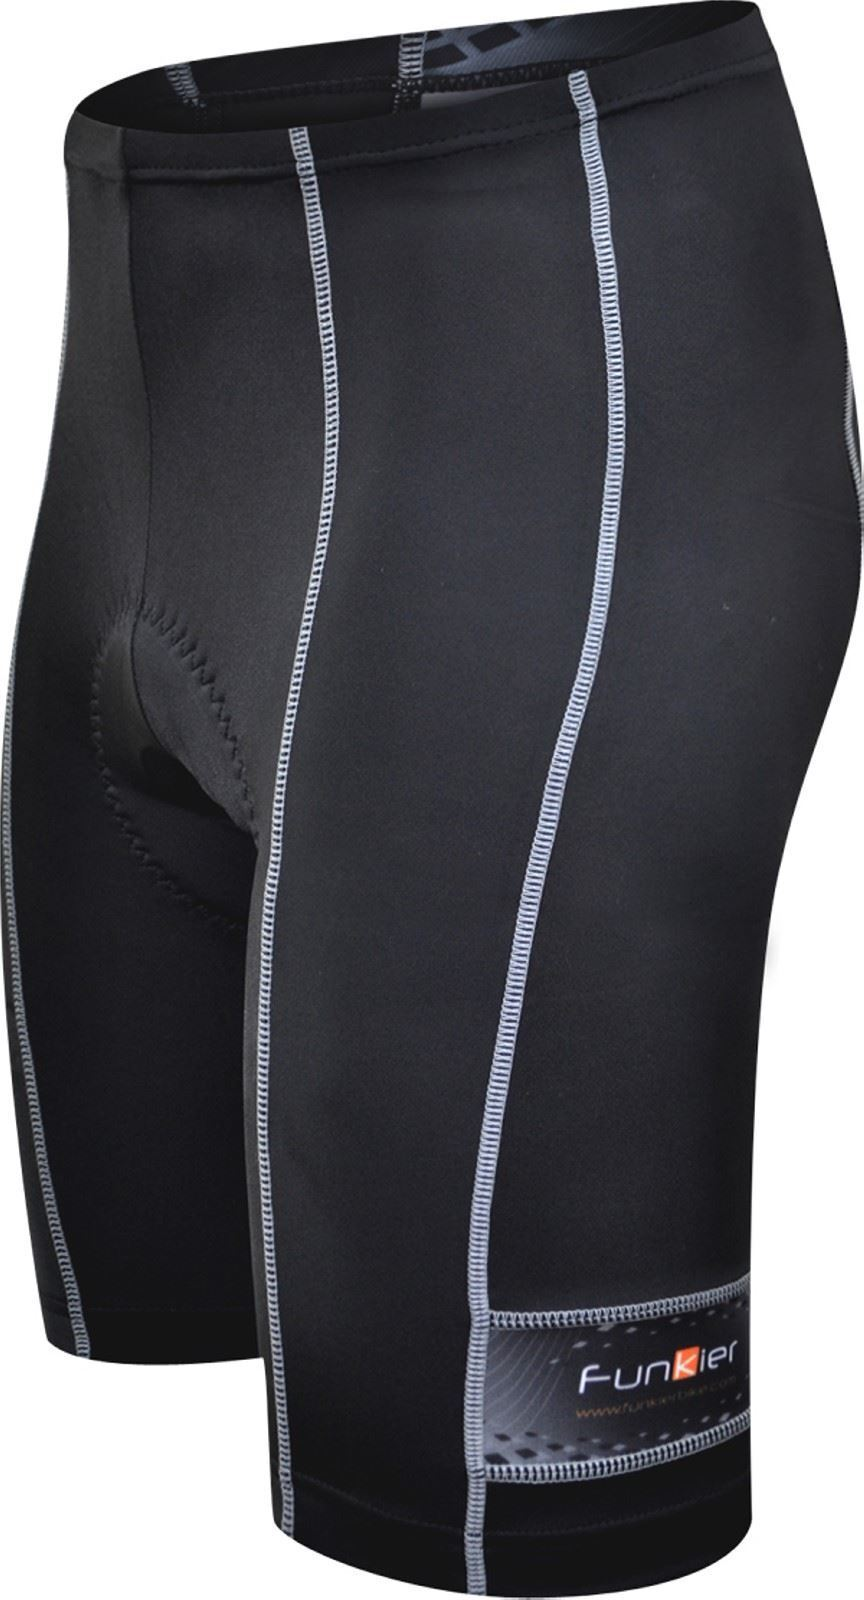 Funkier Force S-203-C1 - 10 Panel Aktiv Shorts in Schwarz XL